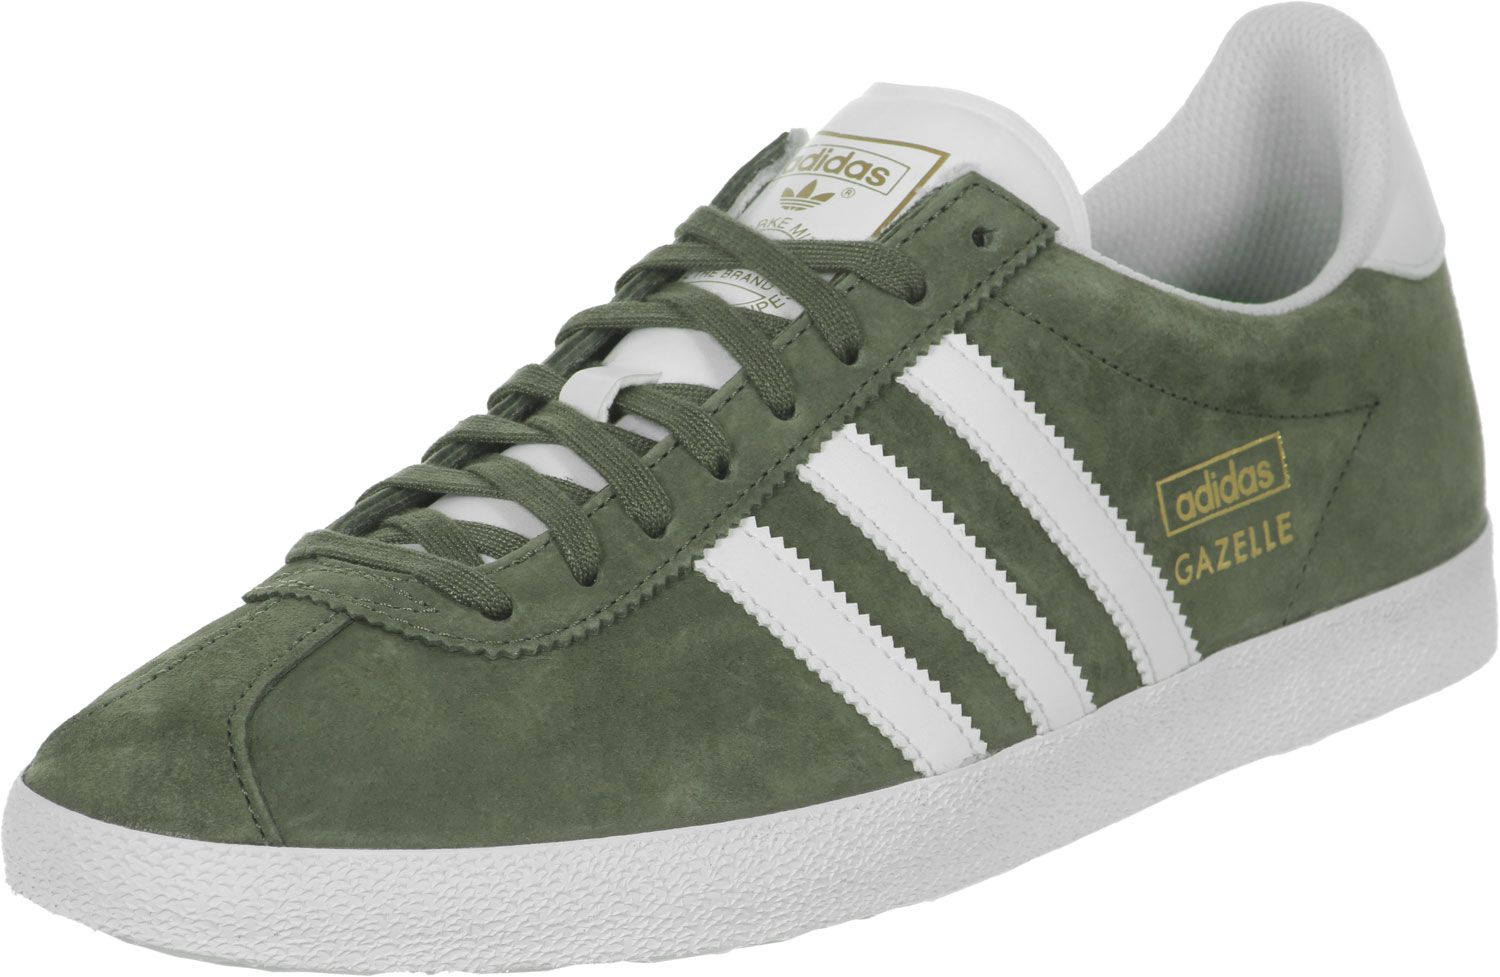 Chaussures Baskets Adidas Campus Lo Or Or Blanc Vert Blanc Vert UpE3f6va